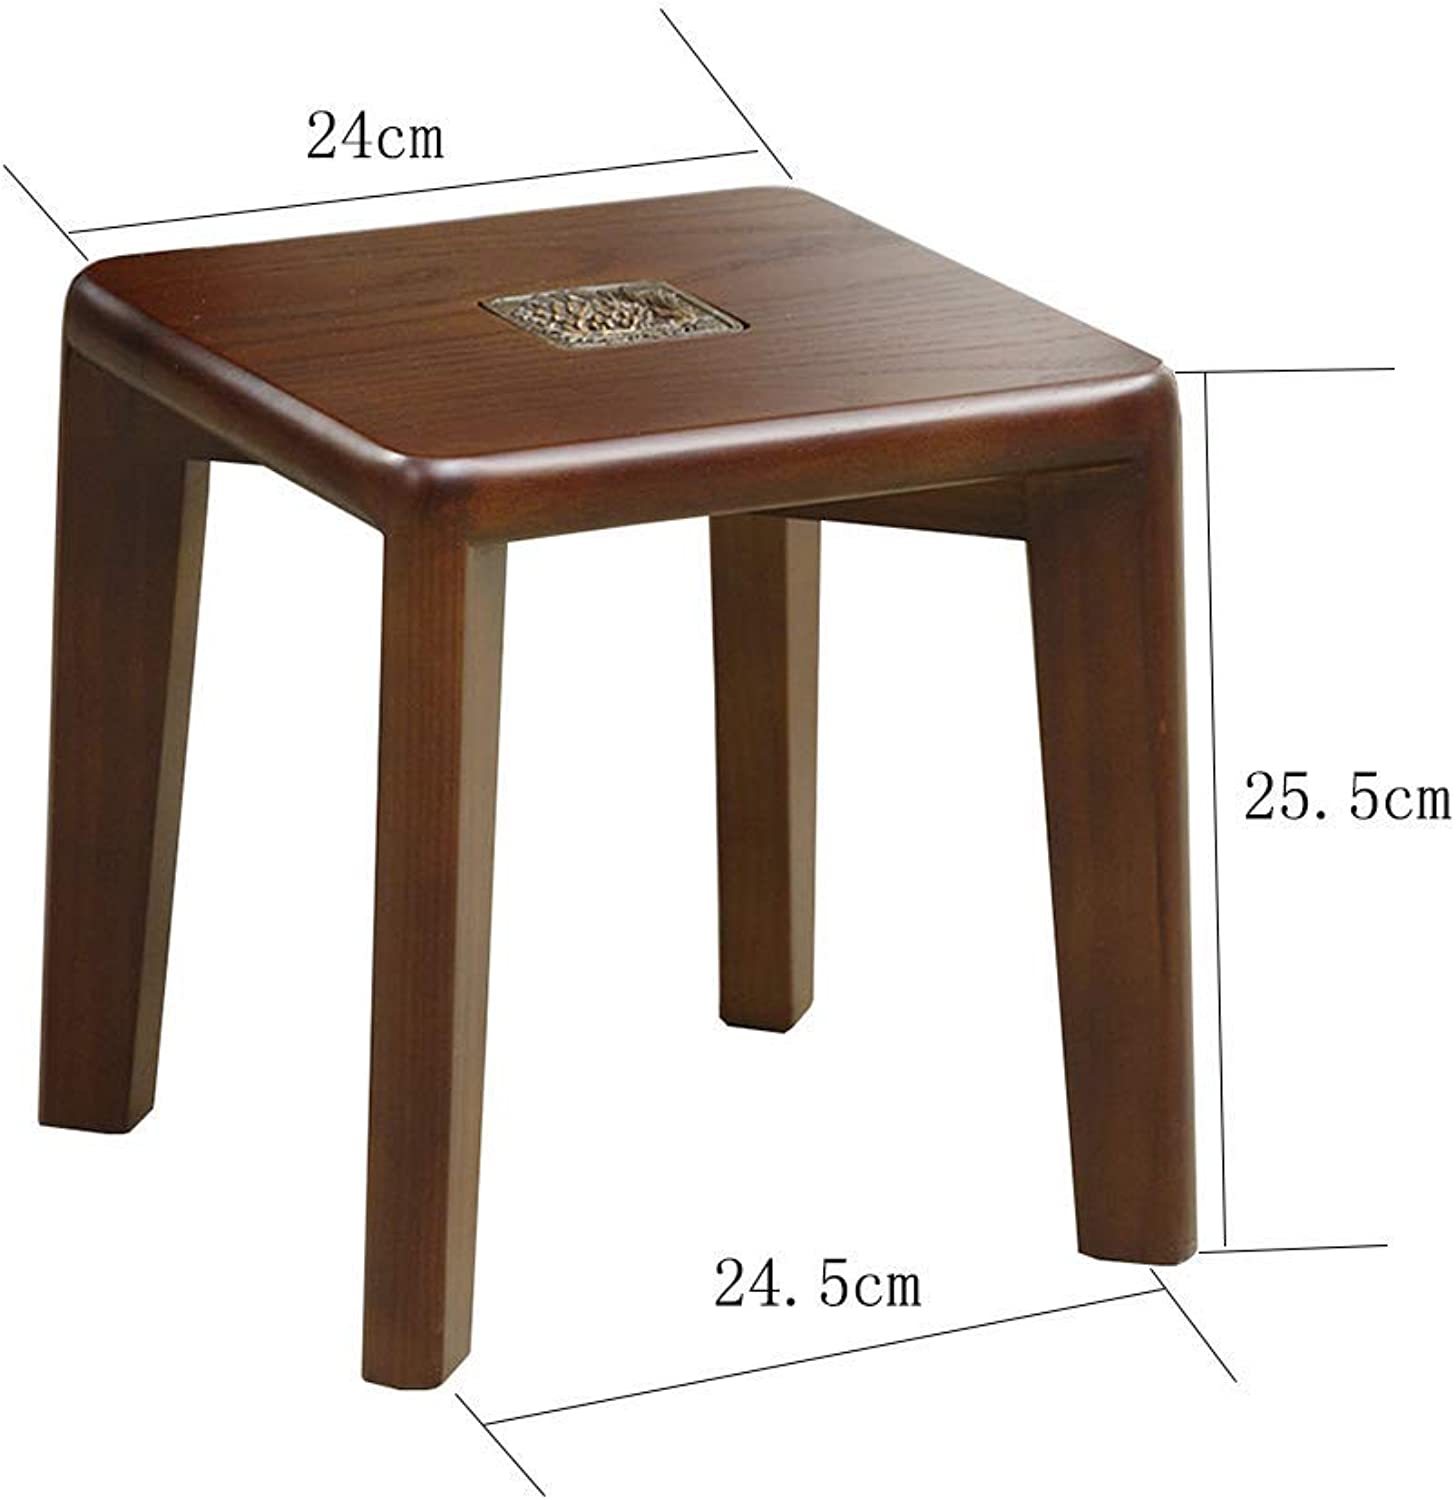 JZX Footstool, shoes Bench, Sofa Bench, Wooden Bench, Solid Wood shoes Fabric Sofa